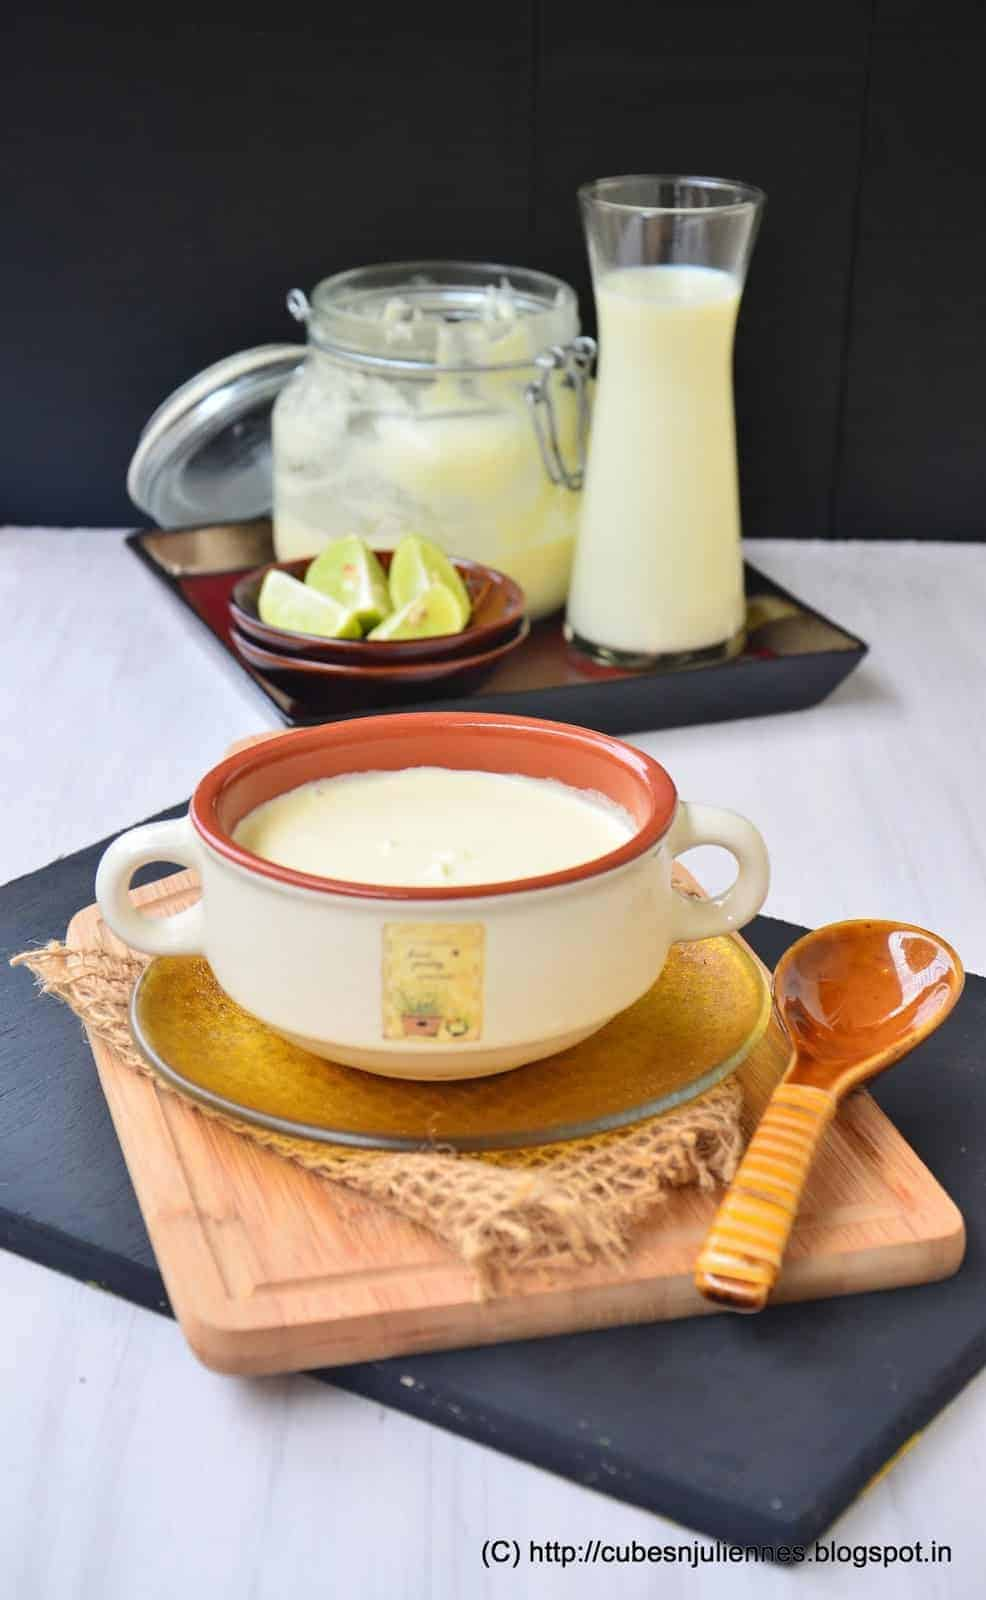 how to make homemade sour cream from milk